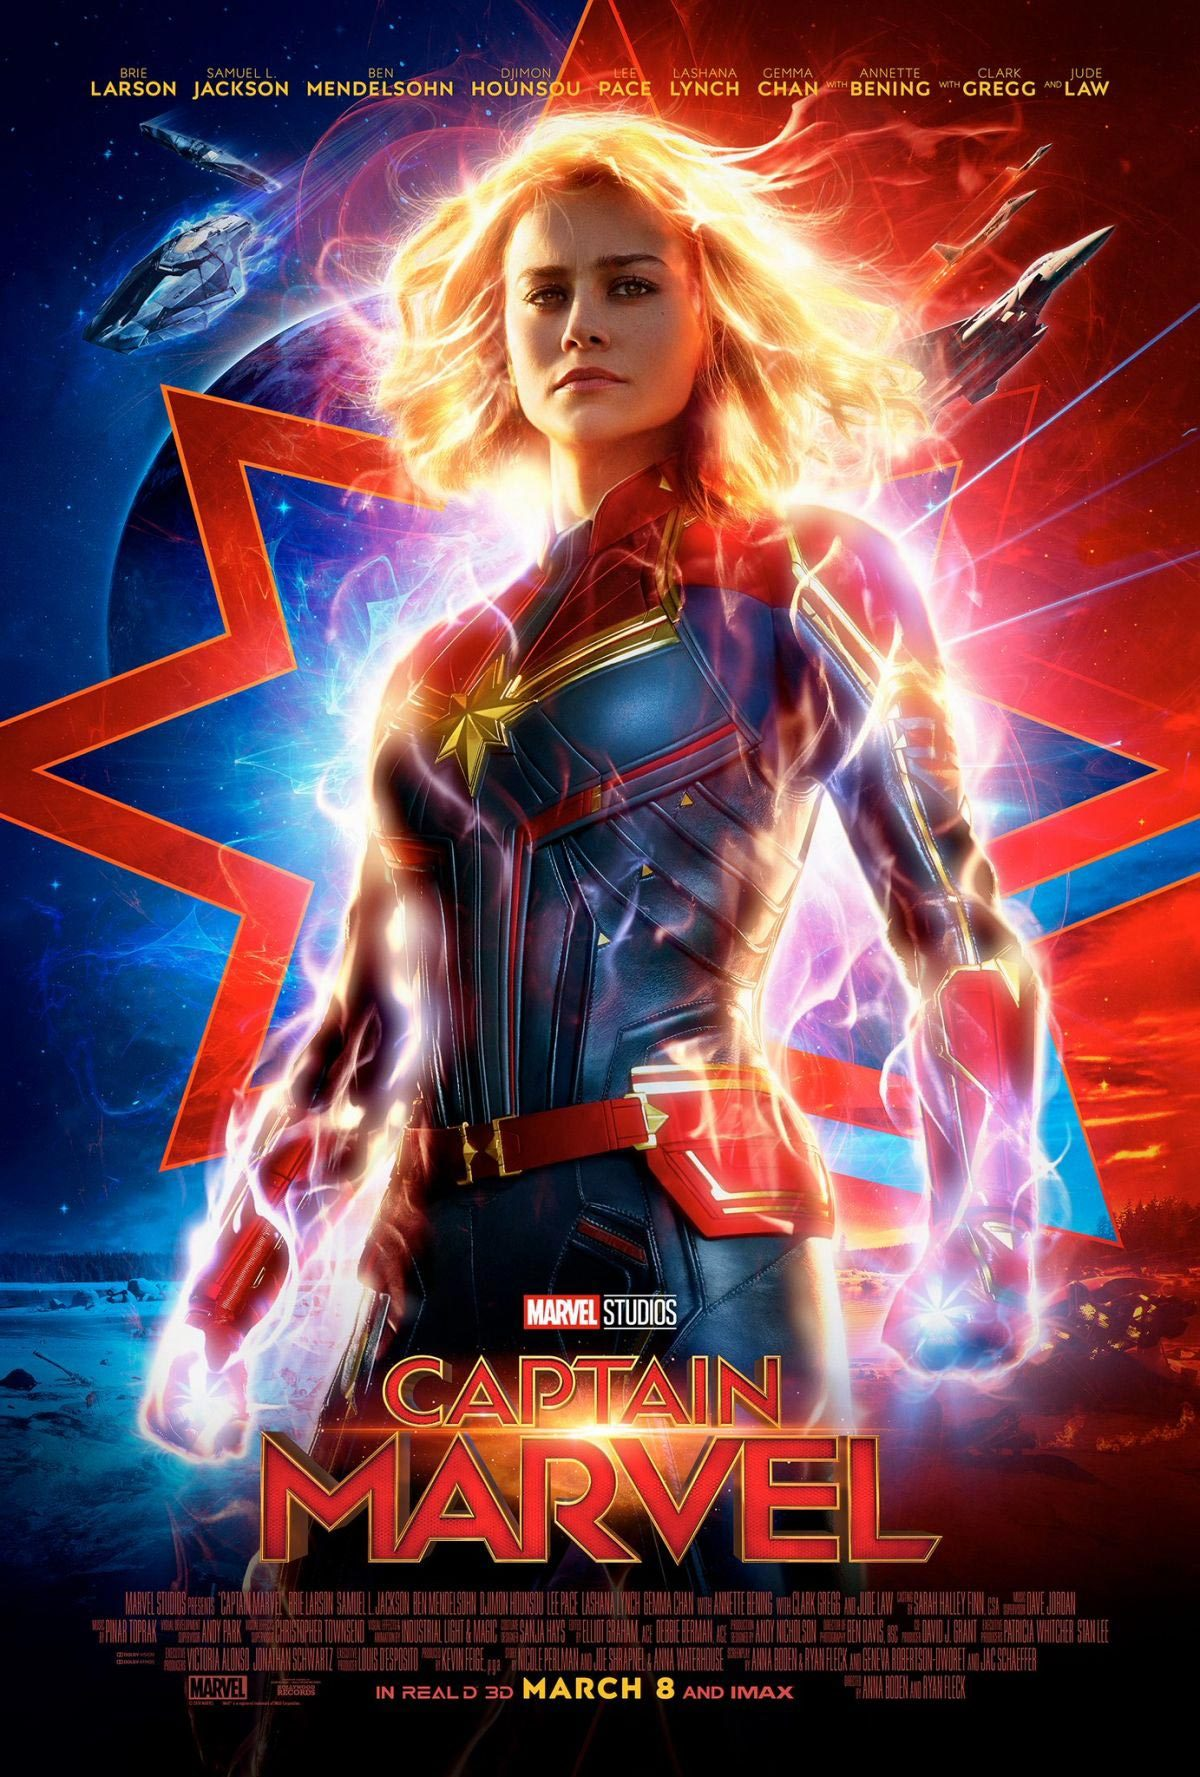 Brie Larson at Captain Marvel 2019 Poster 1